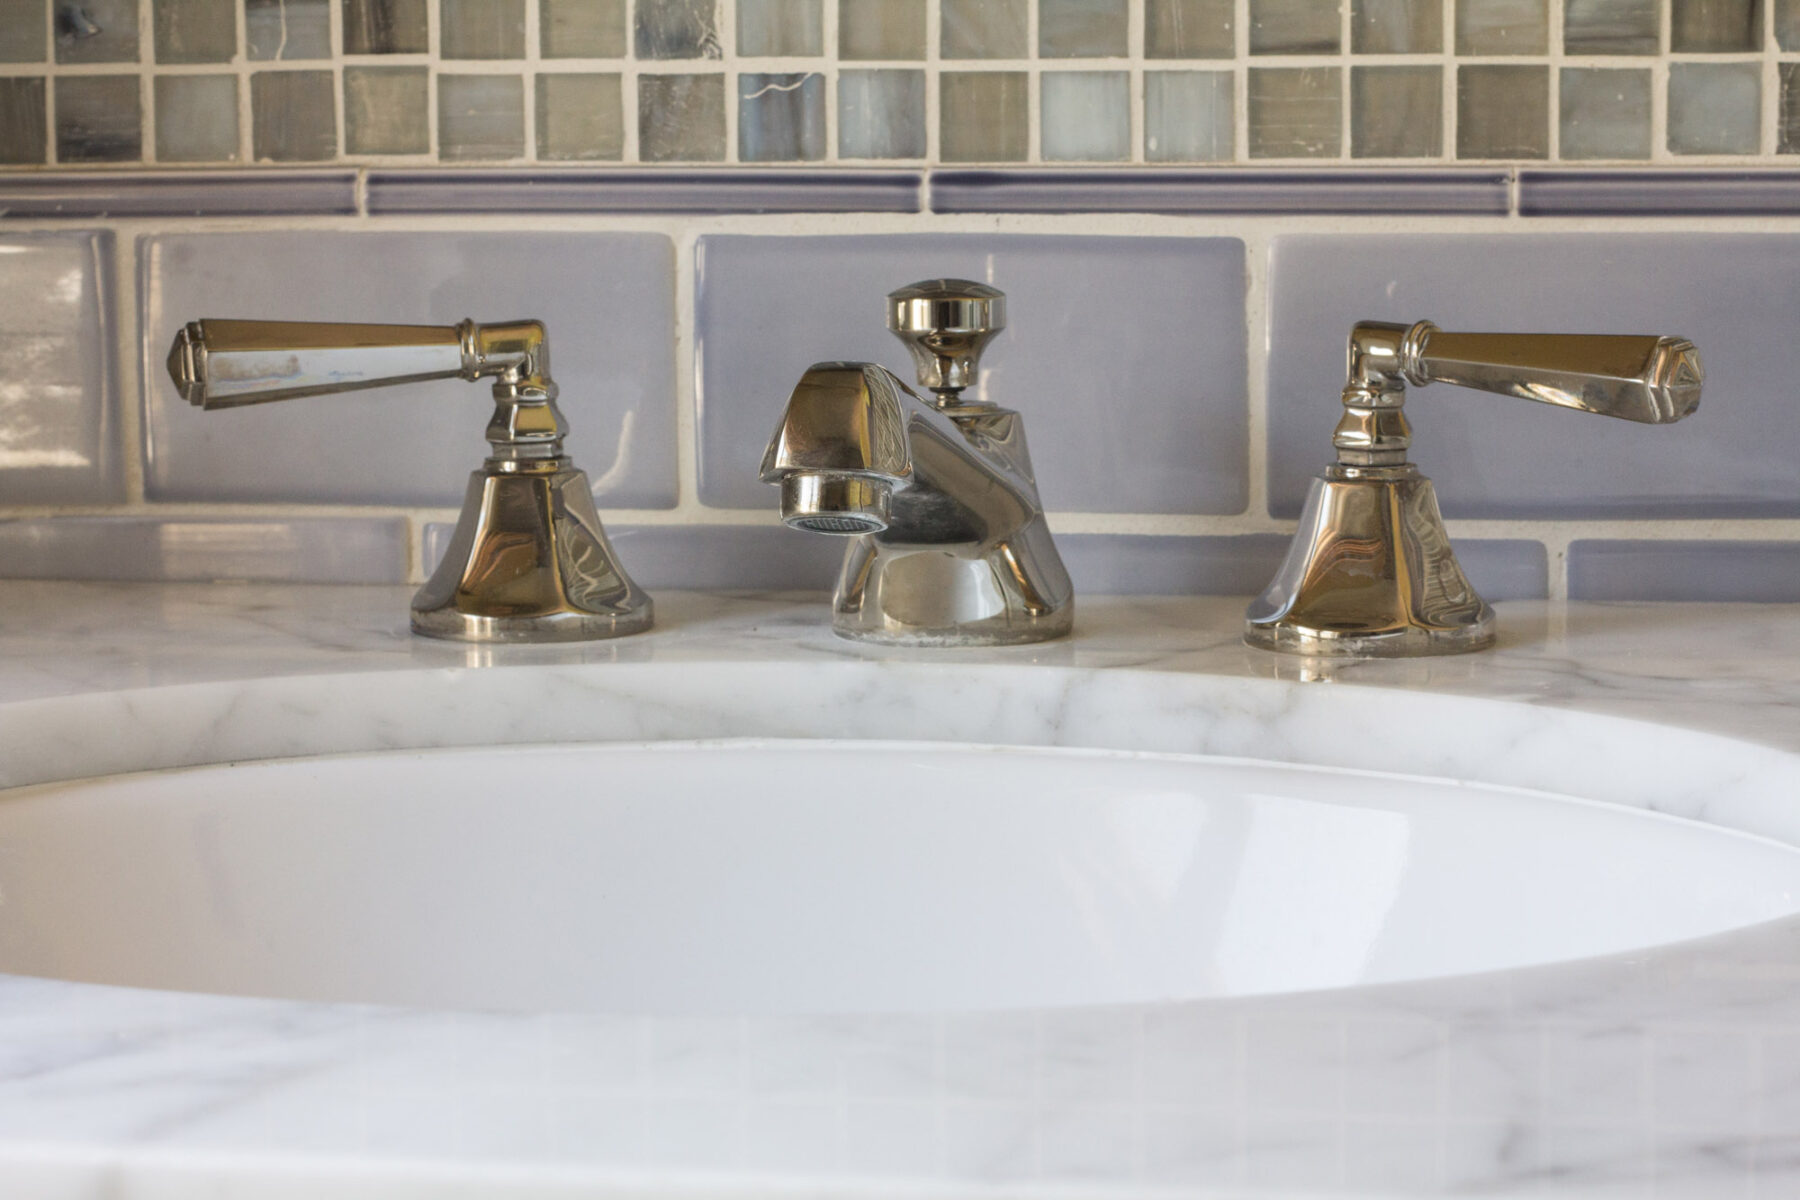 Polished nickel faucets and decorative tile